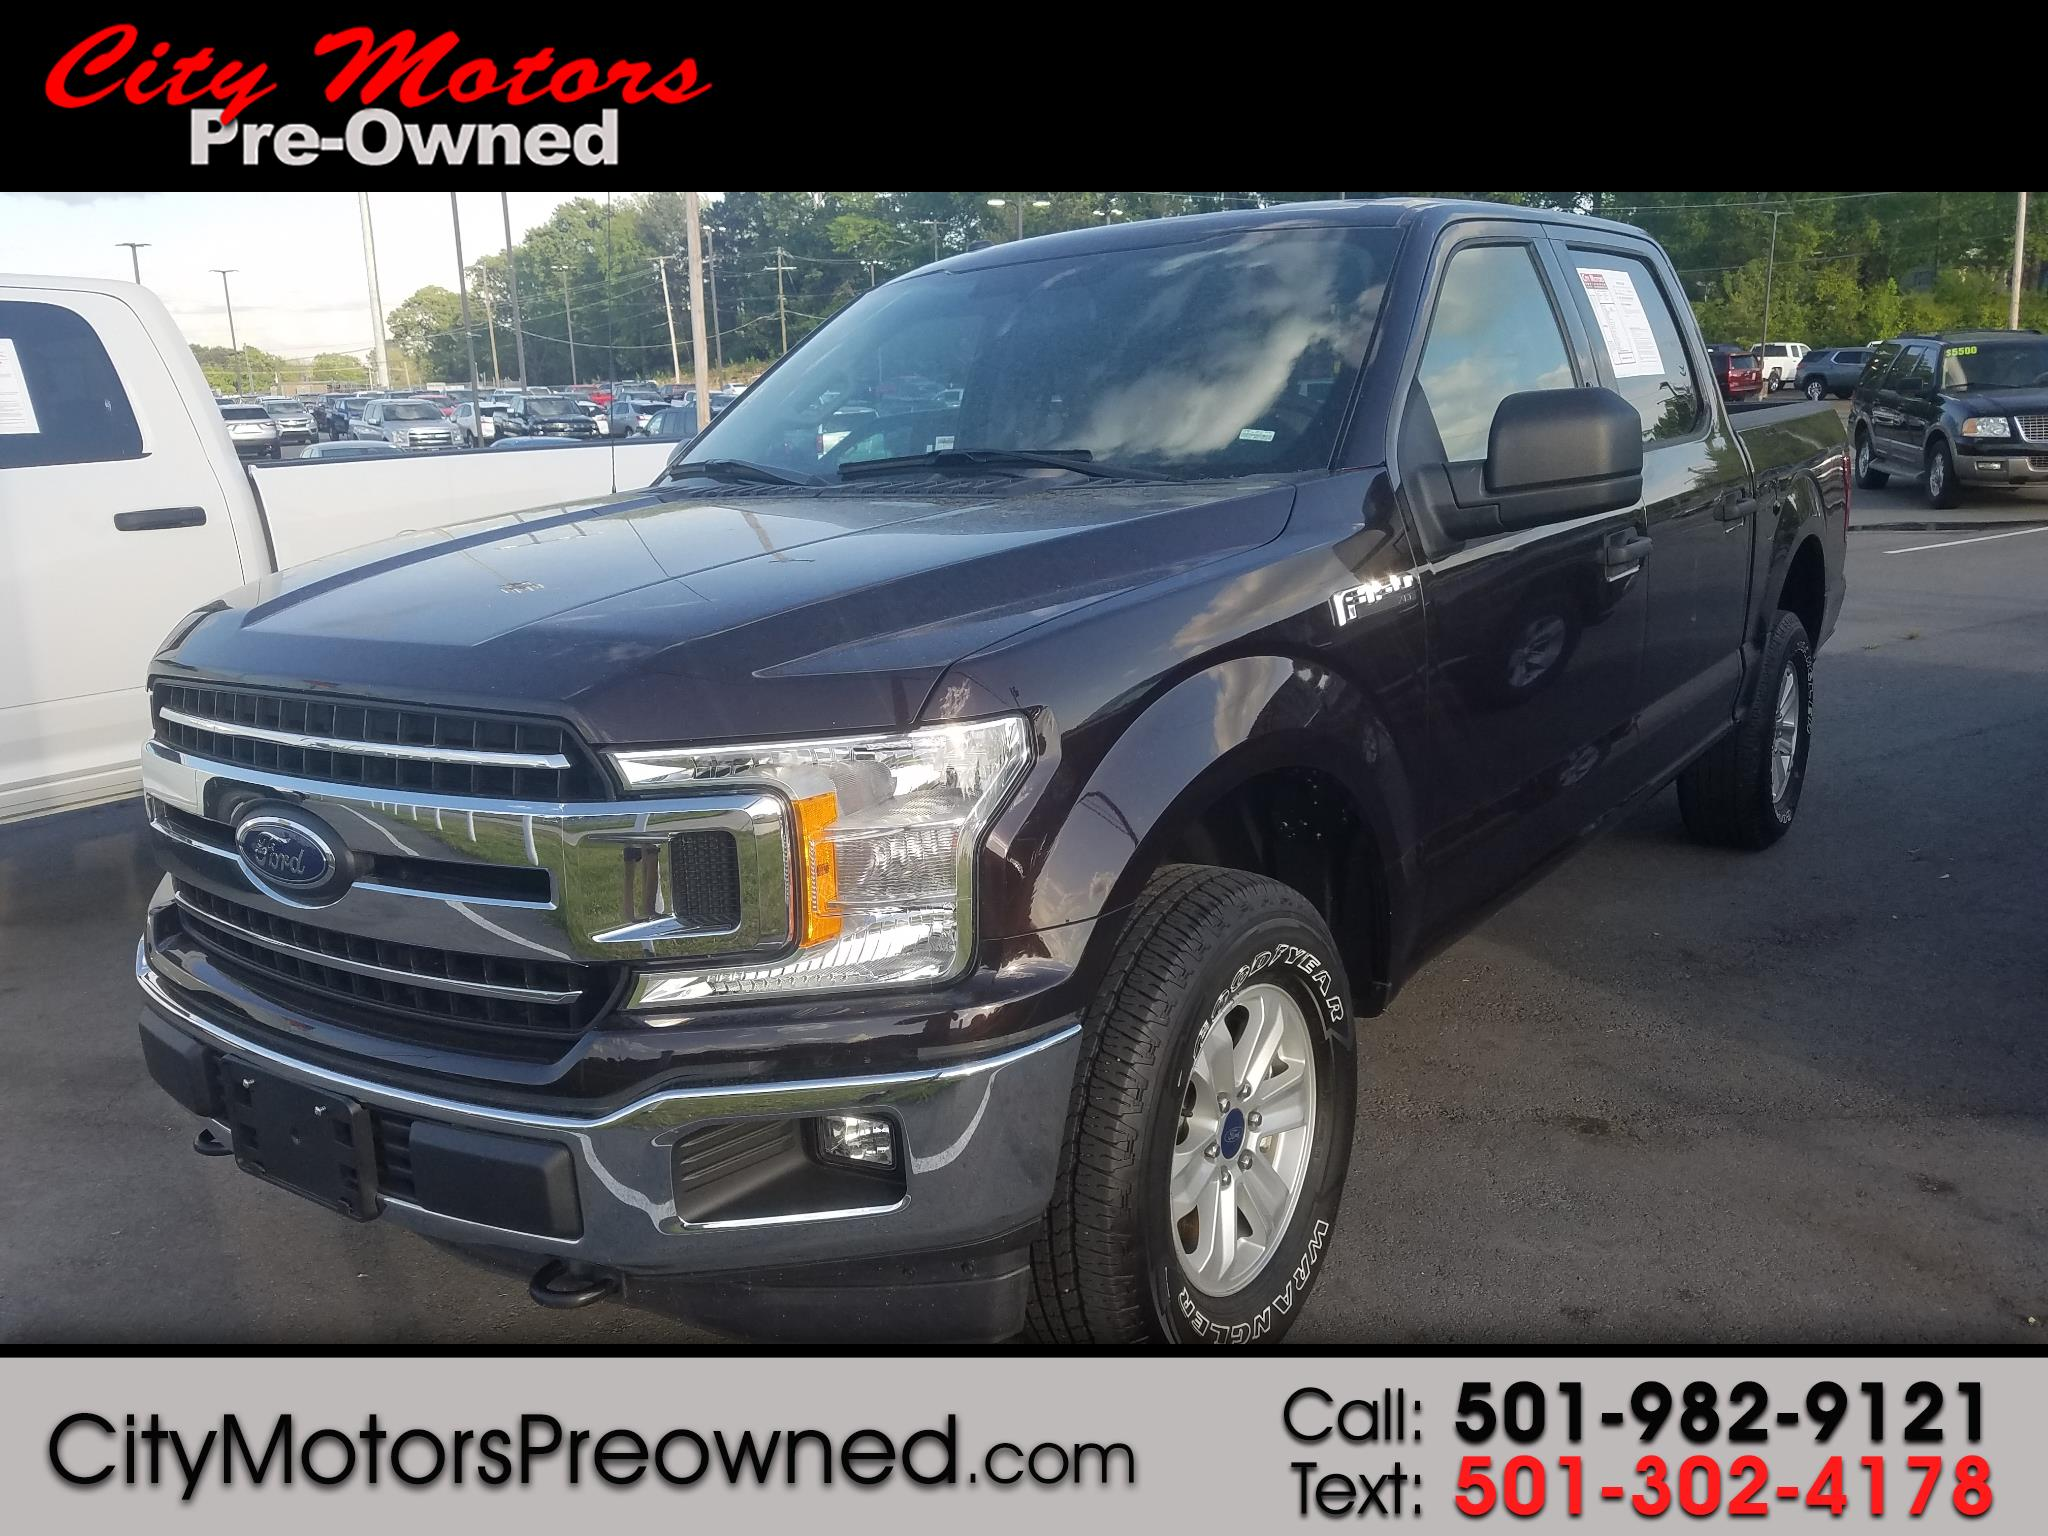 Cars for Sale Near Me 4×4 New Used Cars for Sale Jacksonville Ar City Motors Pre Owned